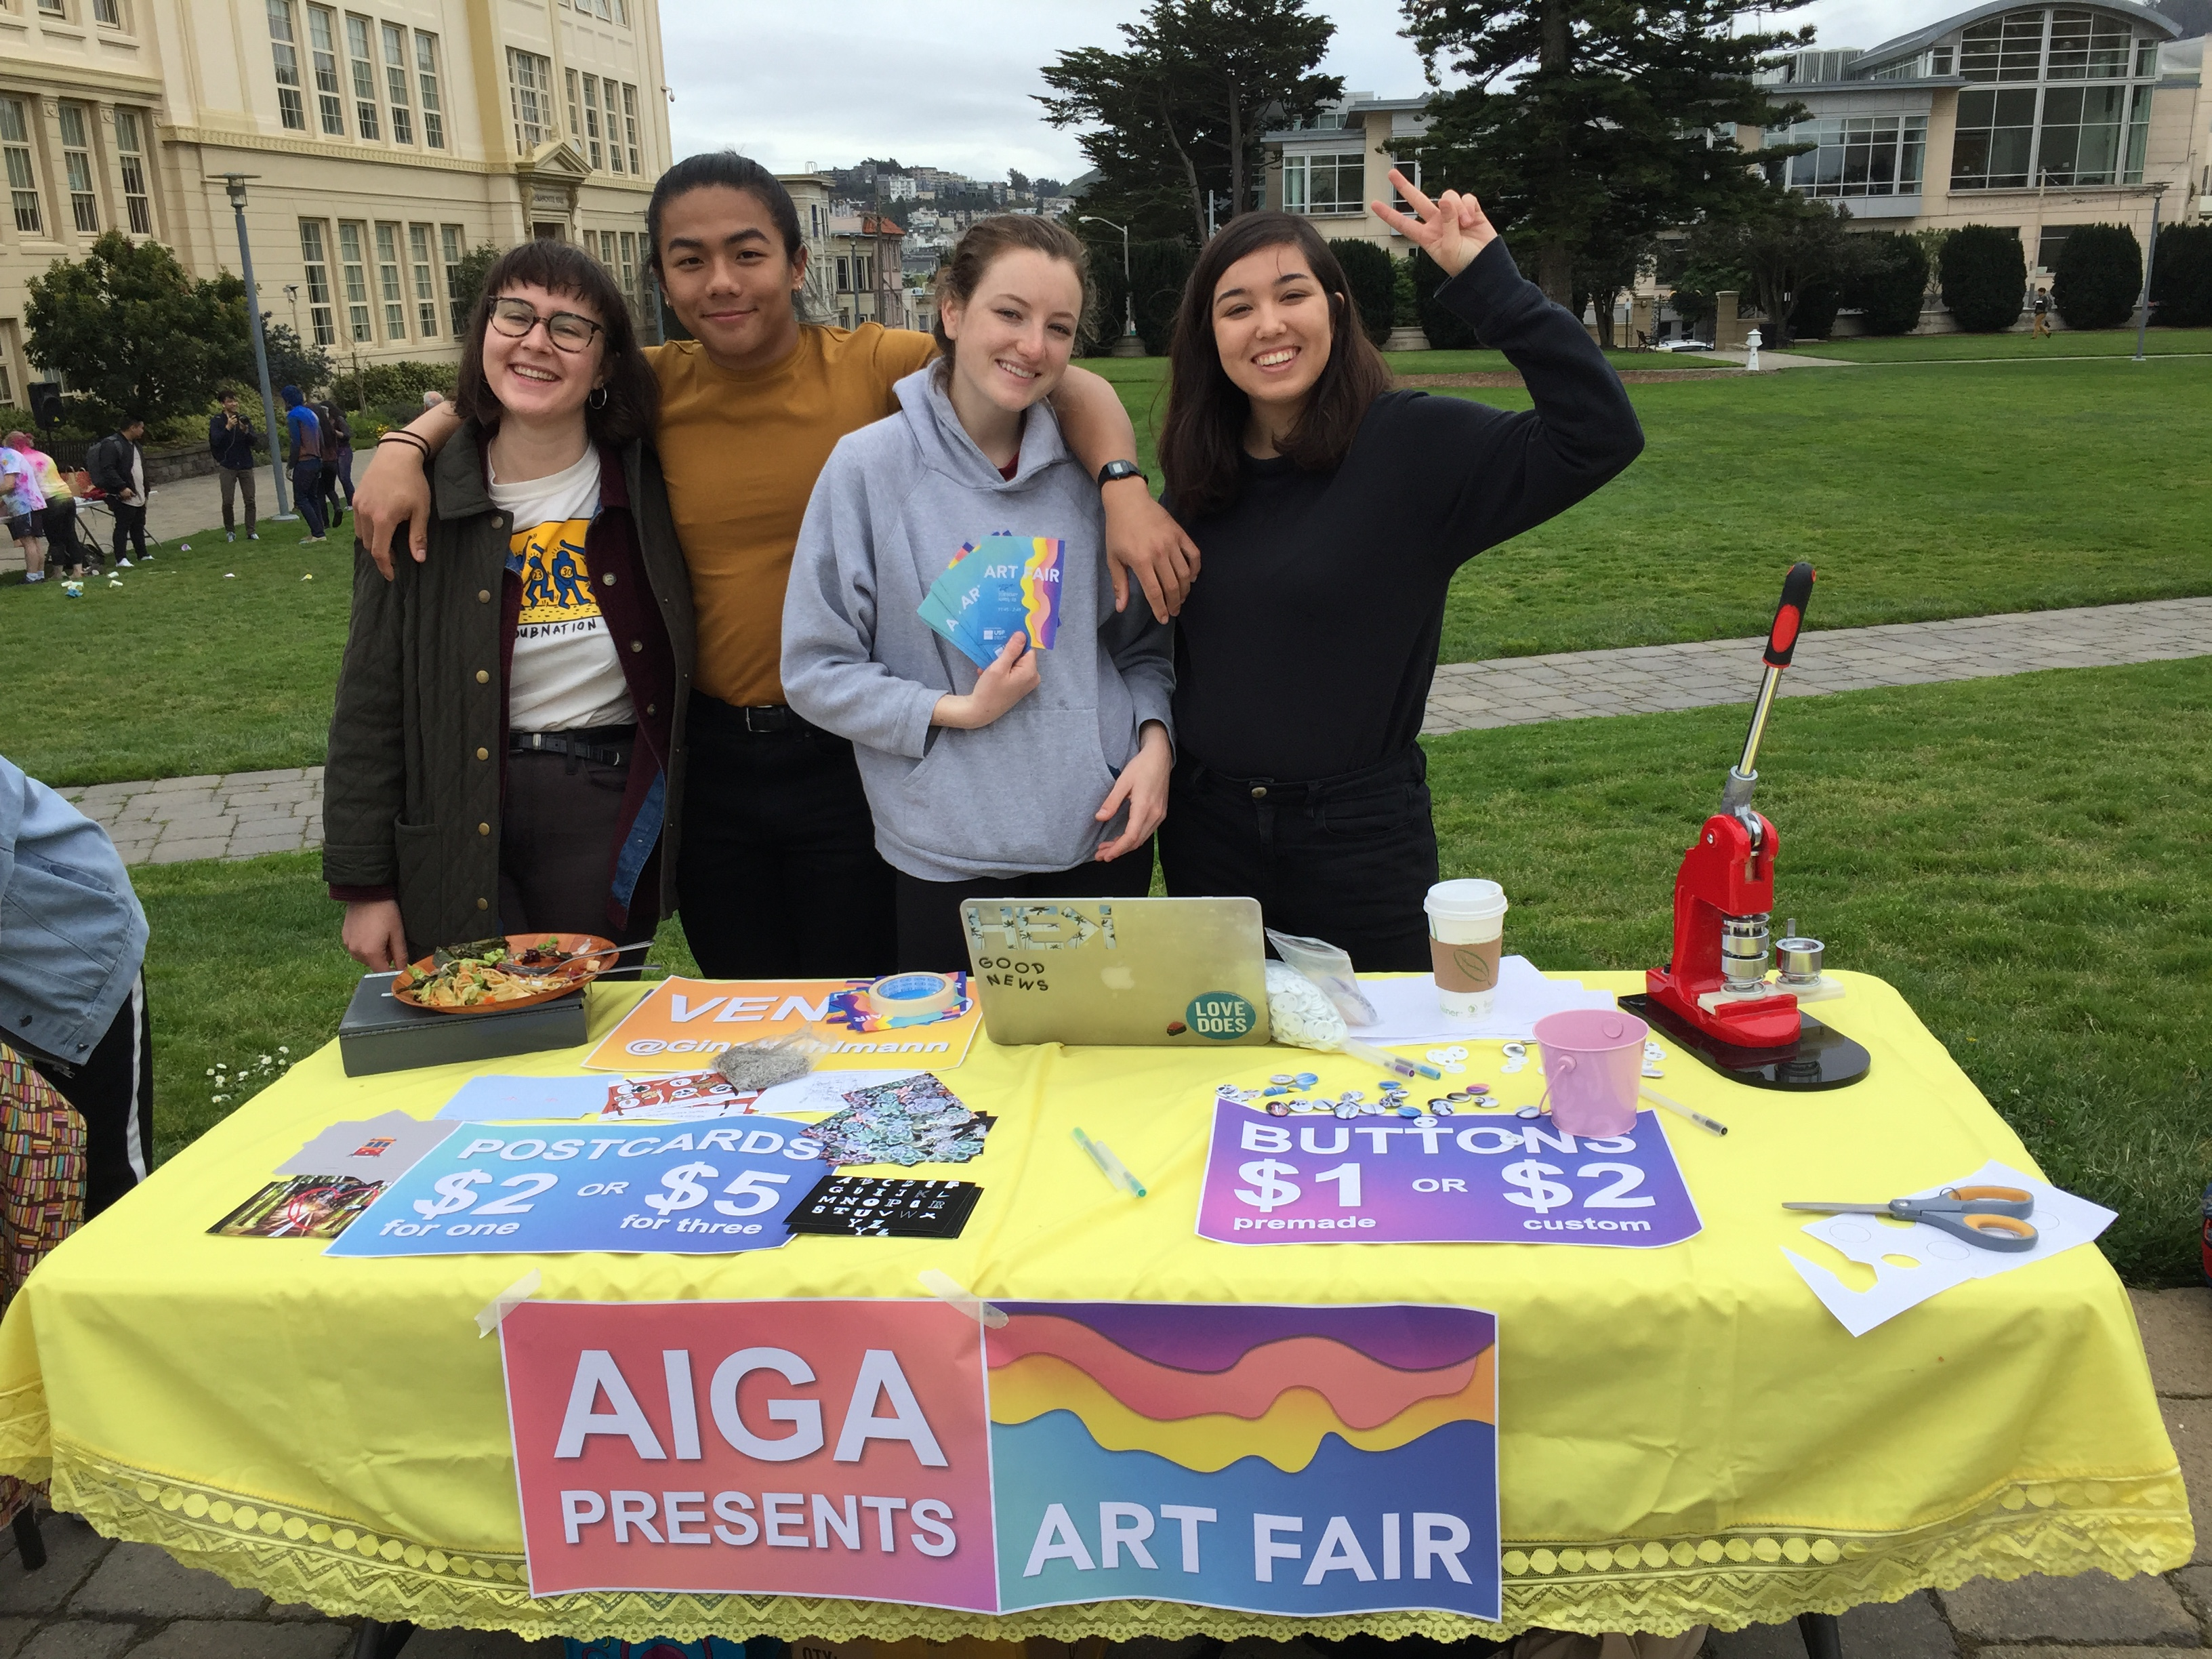 Members present work at the first AIGA art fair